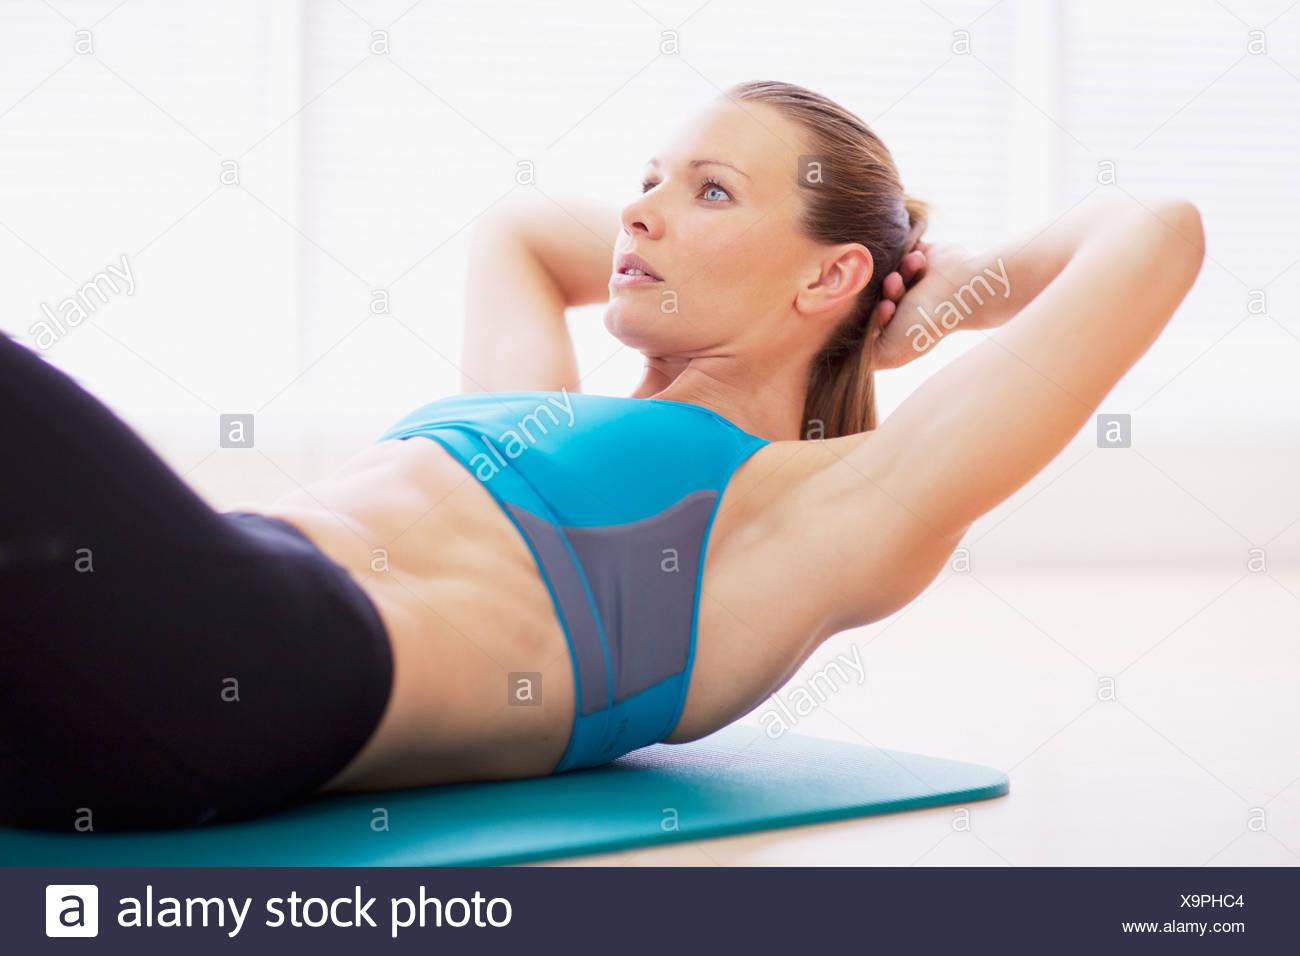 Serious woman in sports bra doing sit-ups on exercise mat Stock Photo